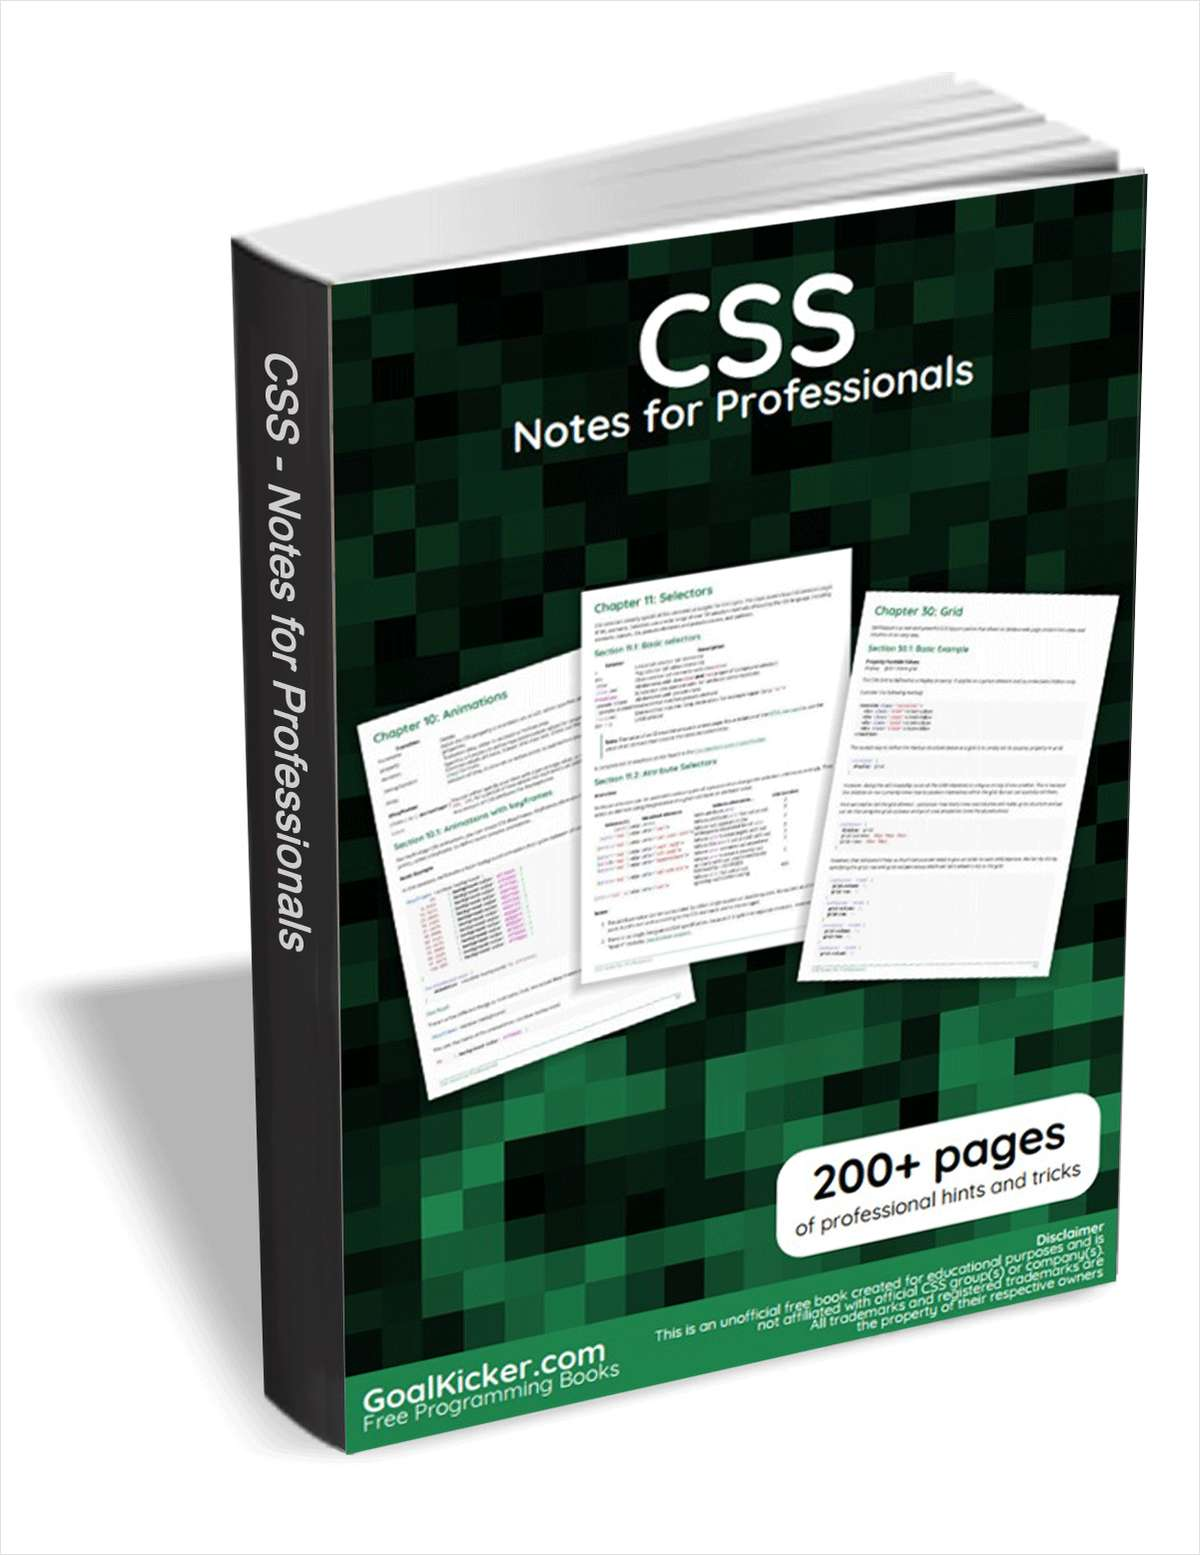 CSS Notes for Professionals